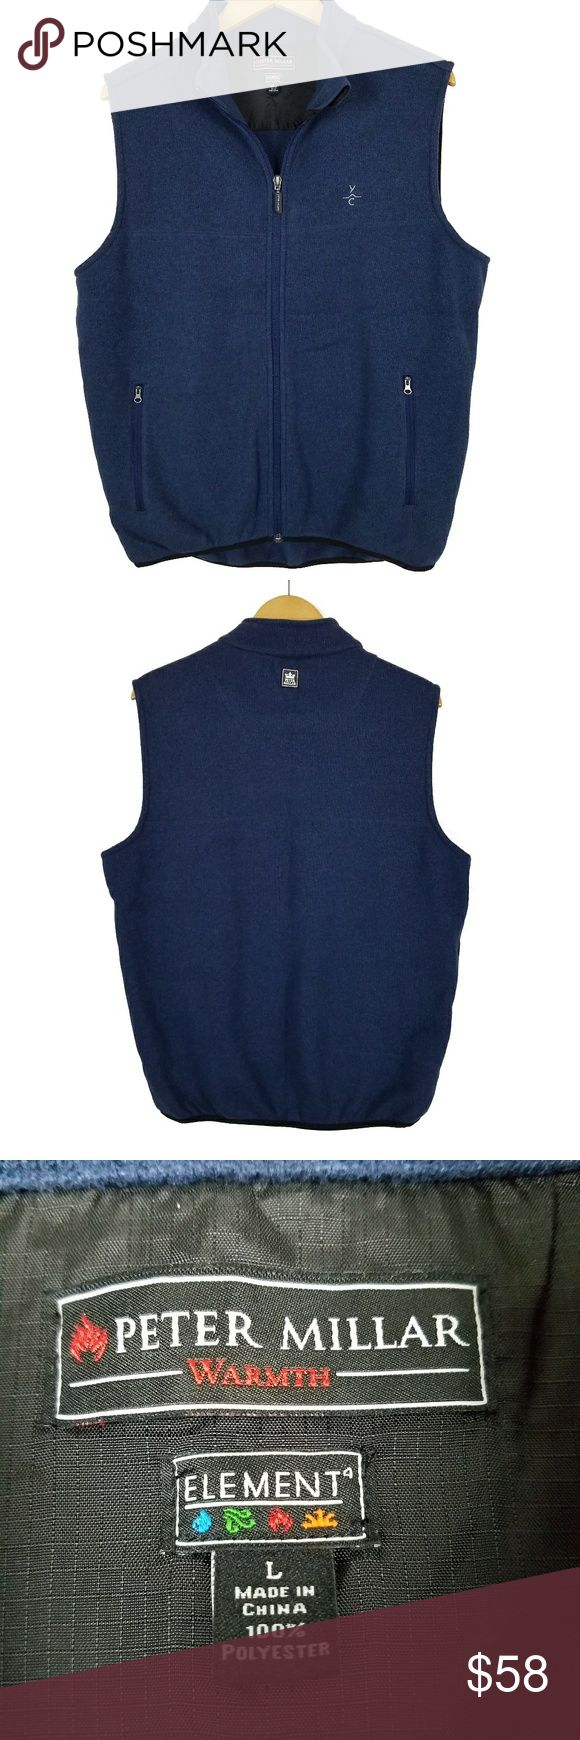 Peter Millar Warmth Element Golf Vest Full ZipUp Zip